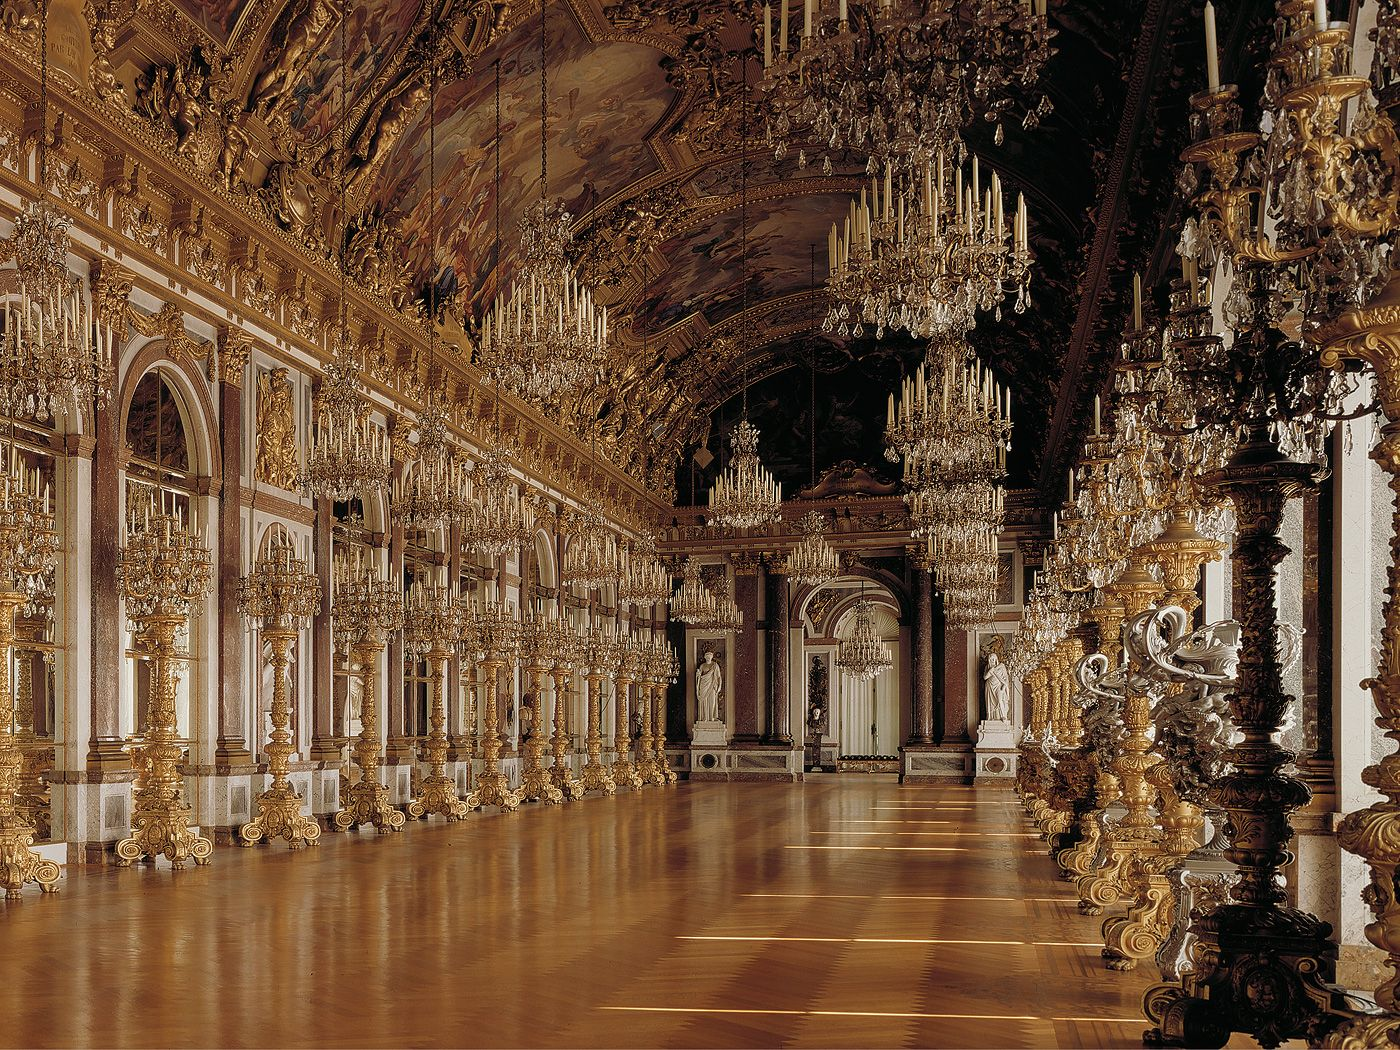 Hall Of Mirrors Neues Schloss Herrenchiemsee Chiemgau Bavaria Germany New Palace Hall Of Mirrors Art And Architecture